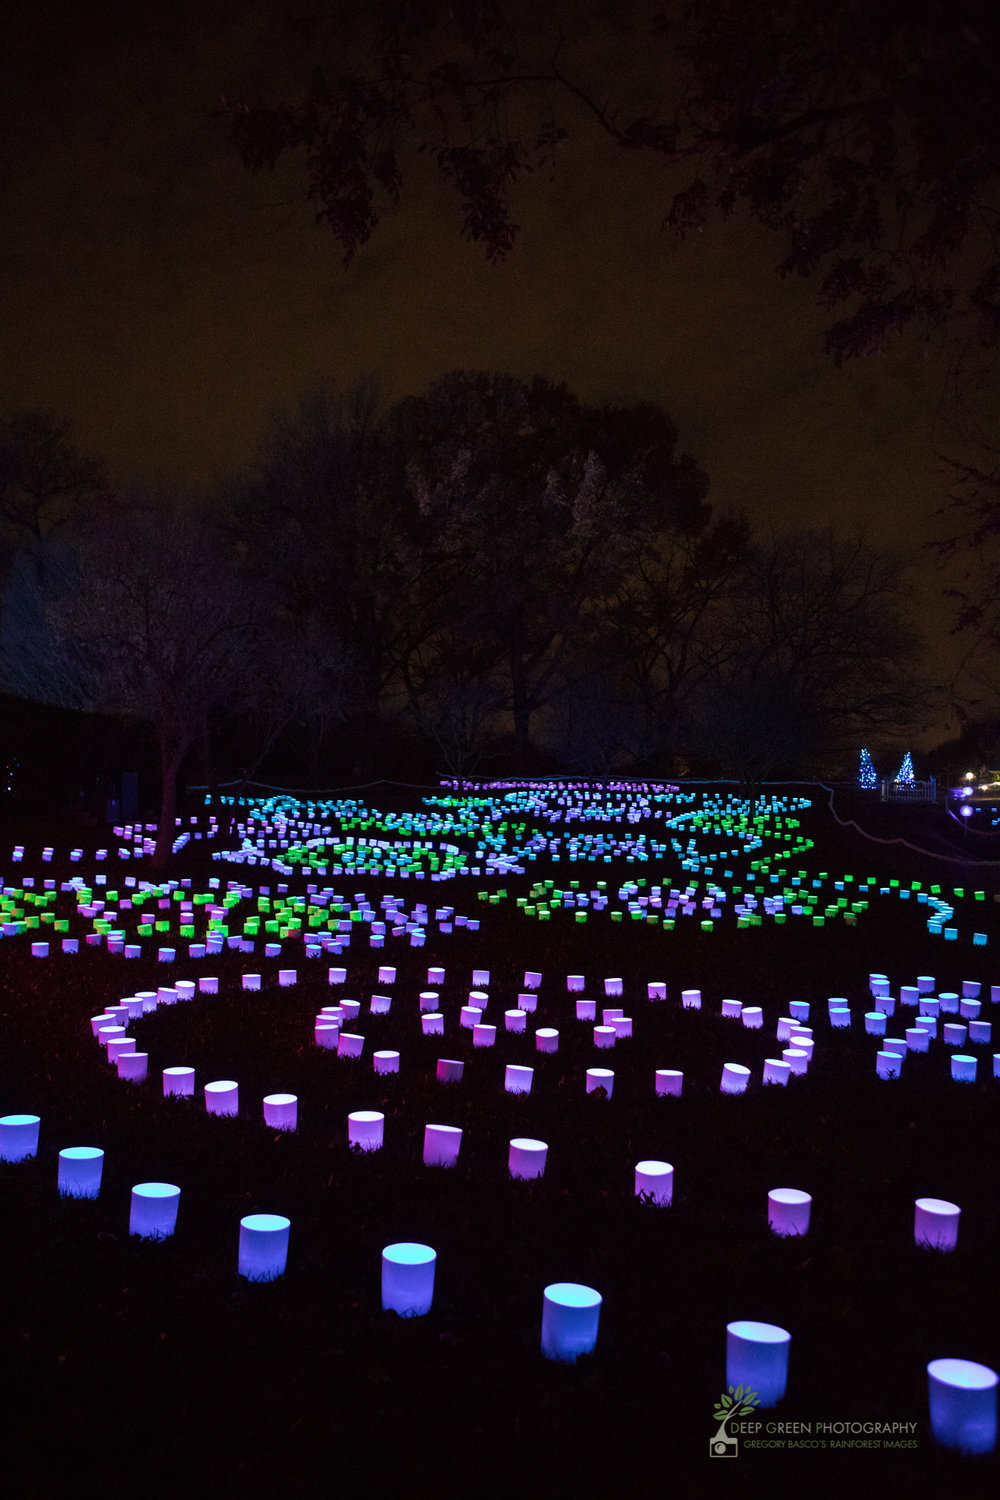 The Missouri Botanical Garden's annual holiday light show merges art and nature